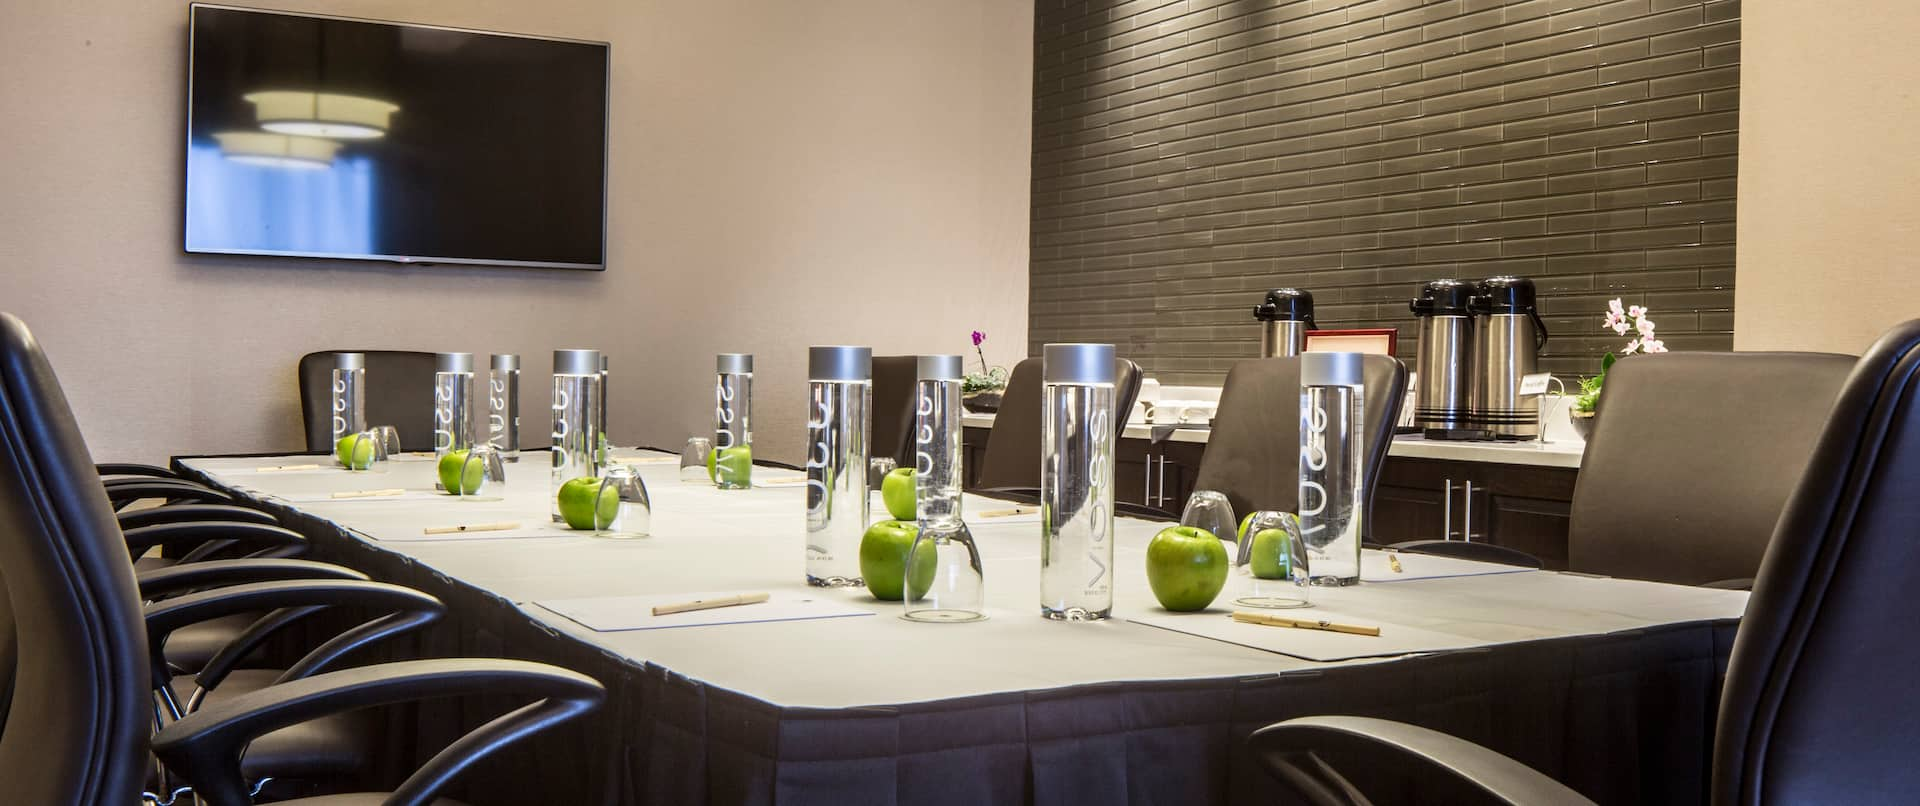 TV, Refreshment Center, Black Chairs, Water Bottles and Green Apples on Table in a Boardroom